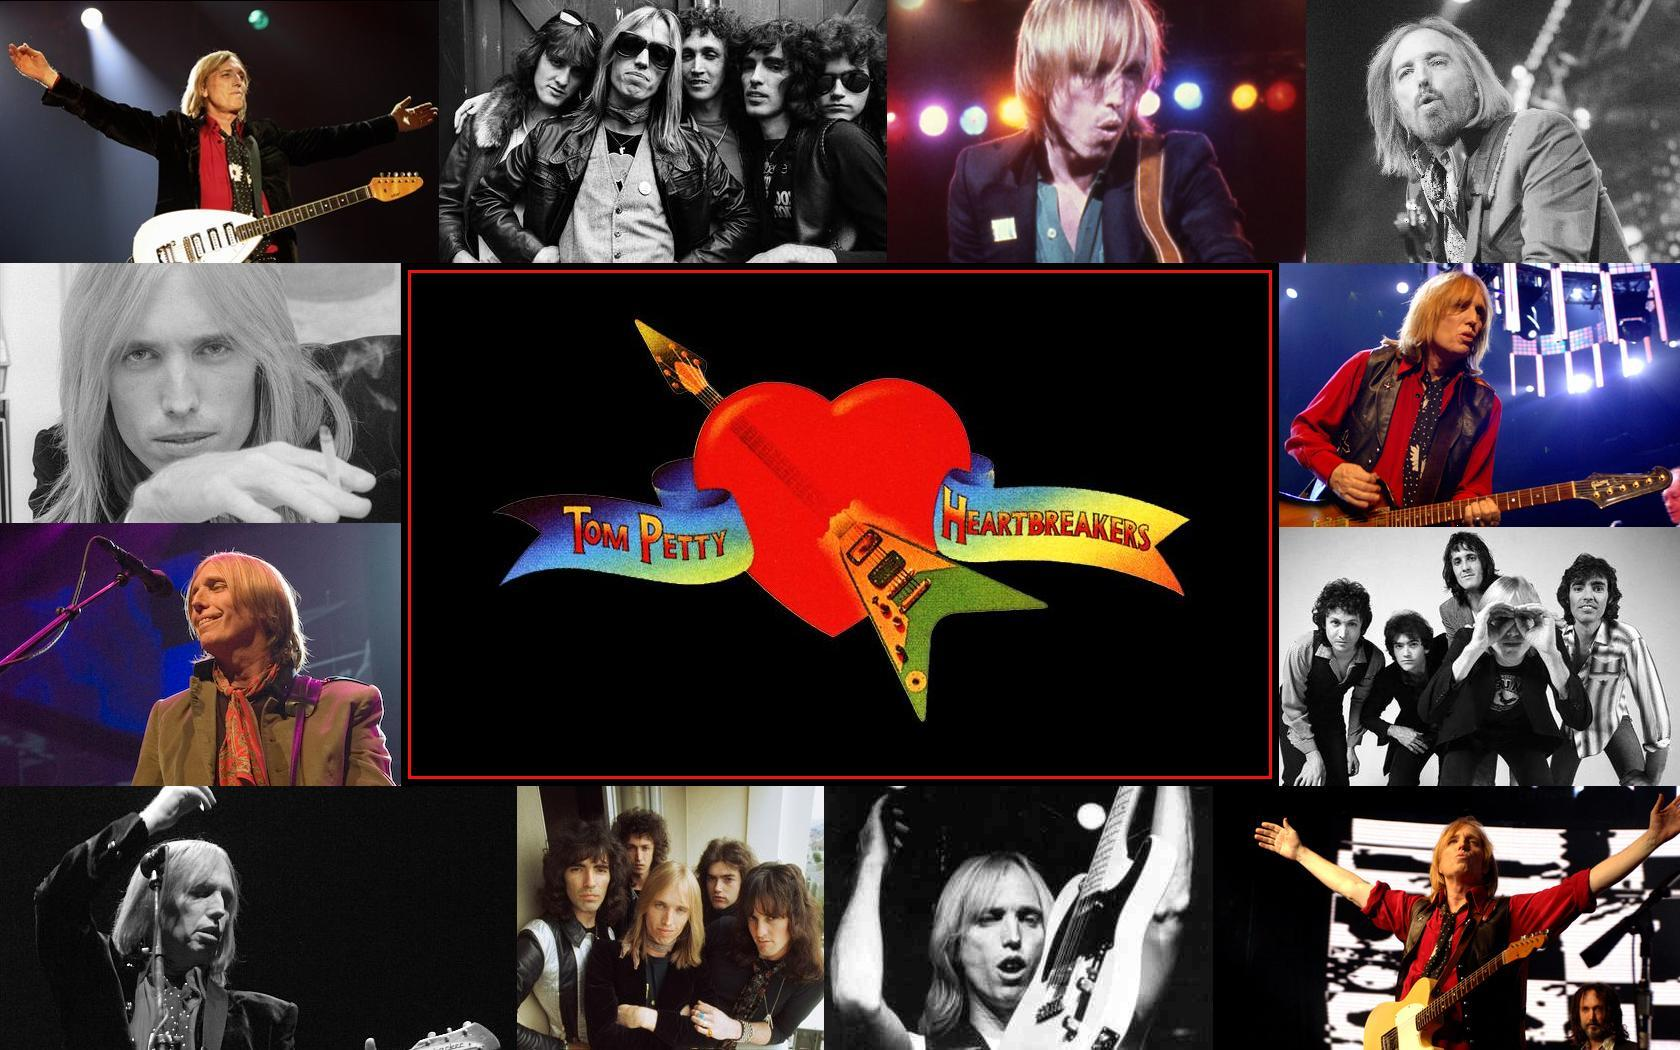 Tom Petty And The Heartbreakers wallpaper   ForWallpapercom 1680x1050